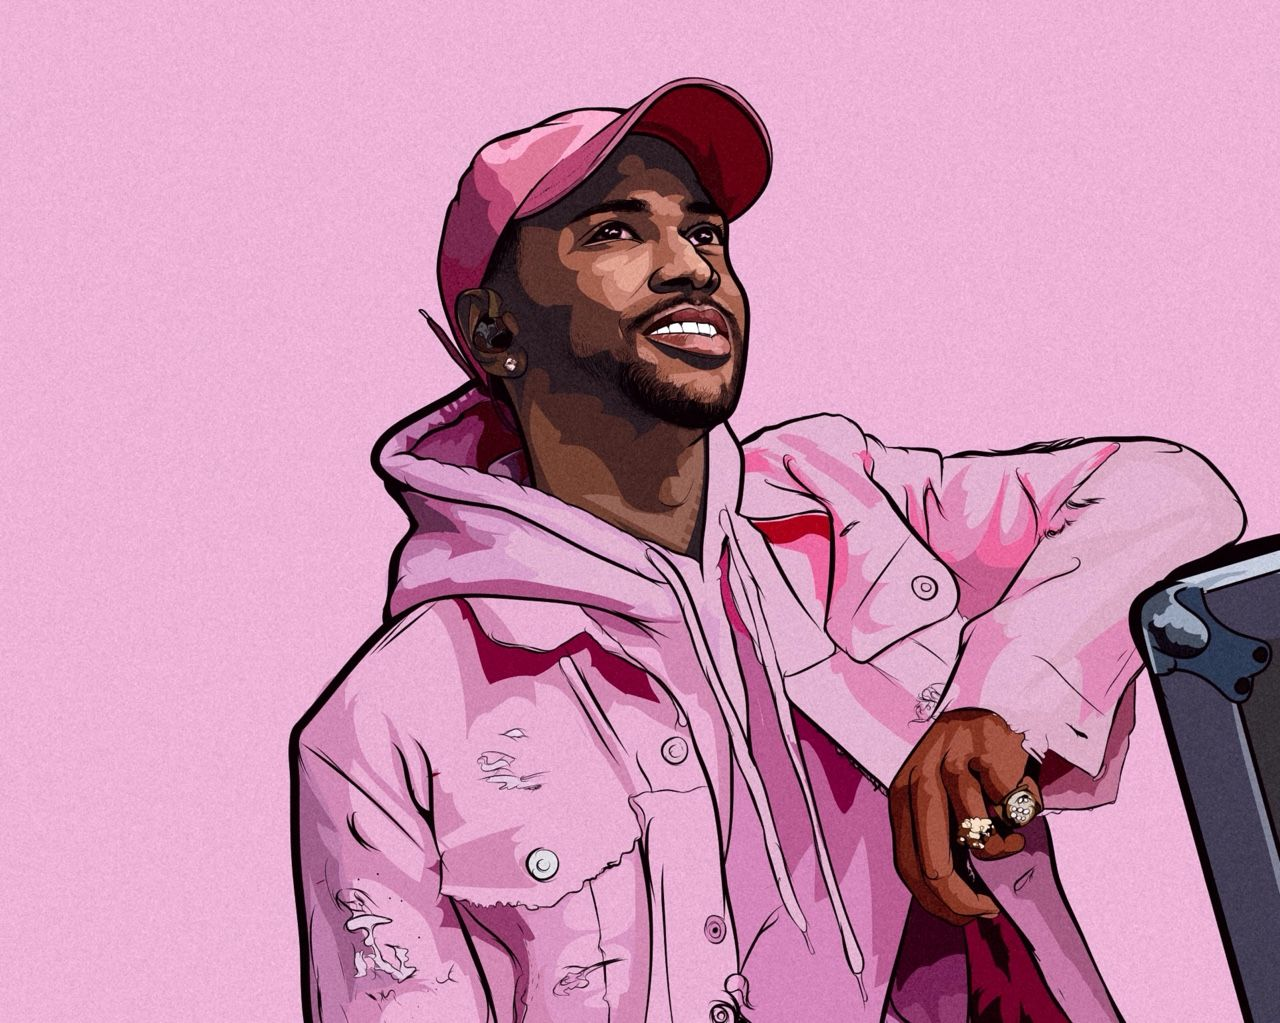 Pin By Anna On Artisticly Created In 2019 Art Dope Art Big Sean